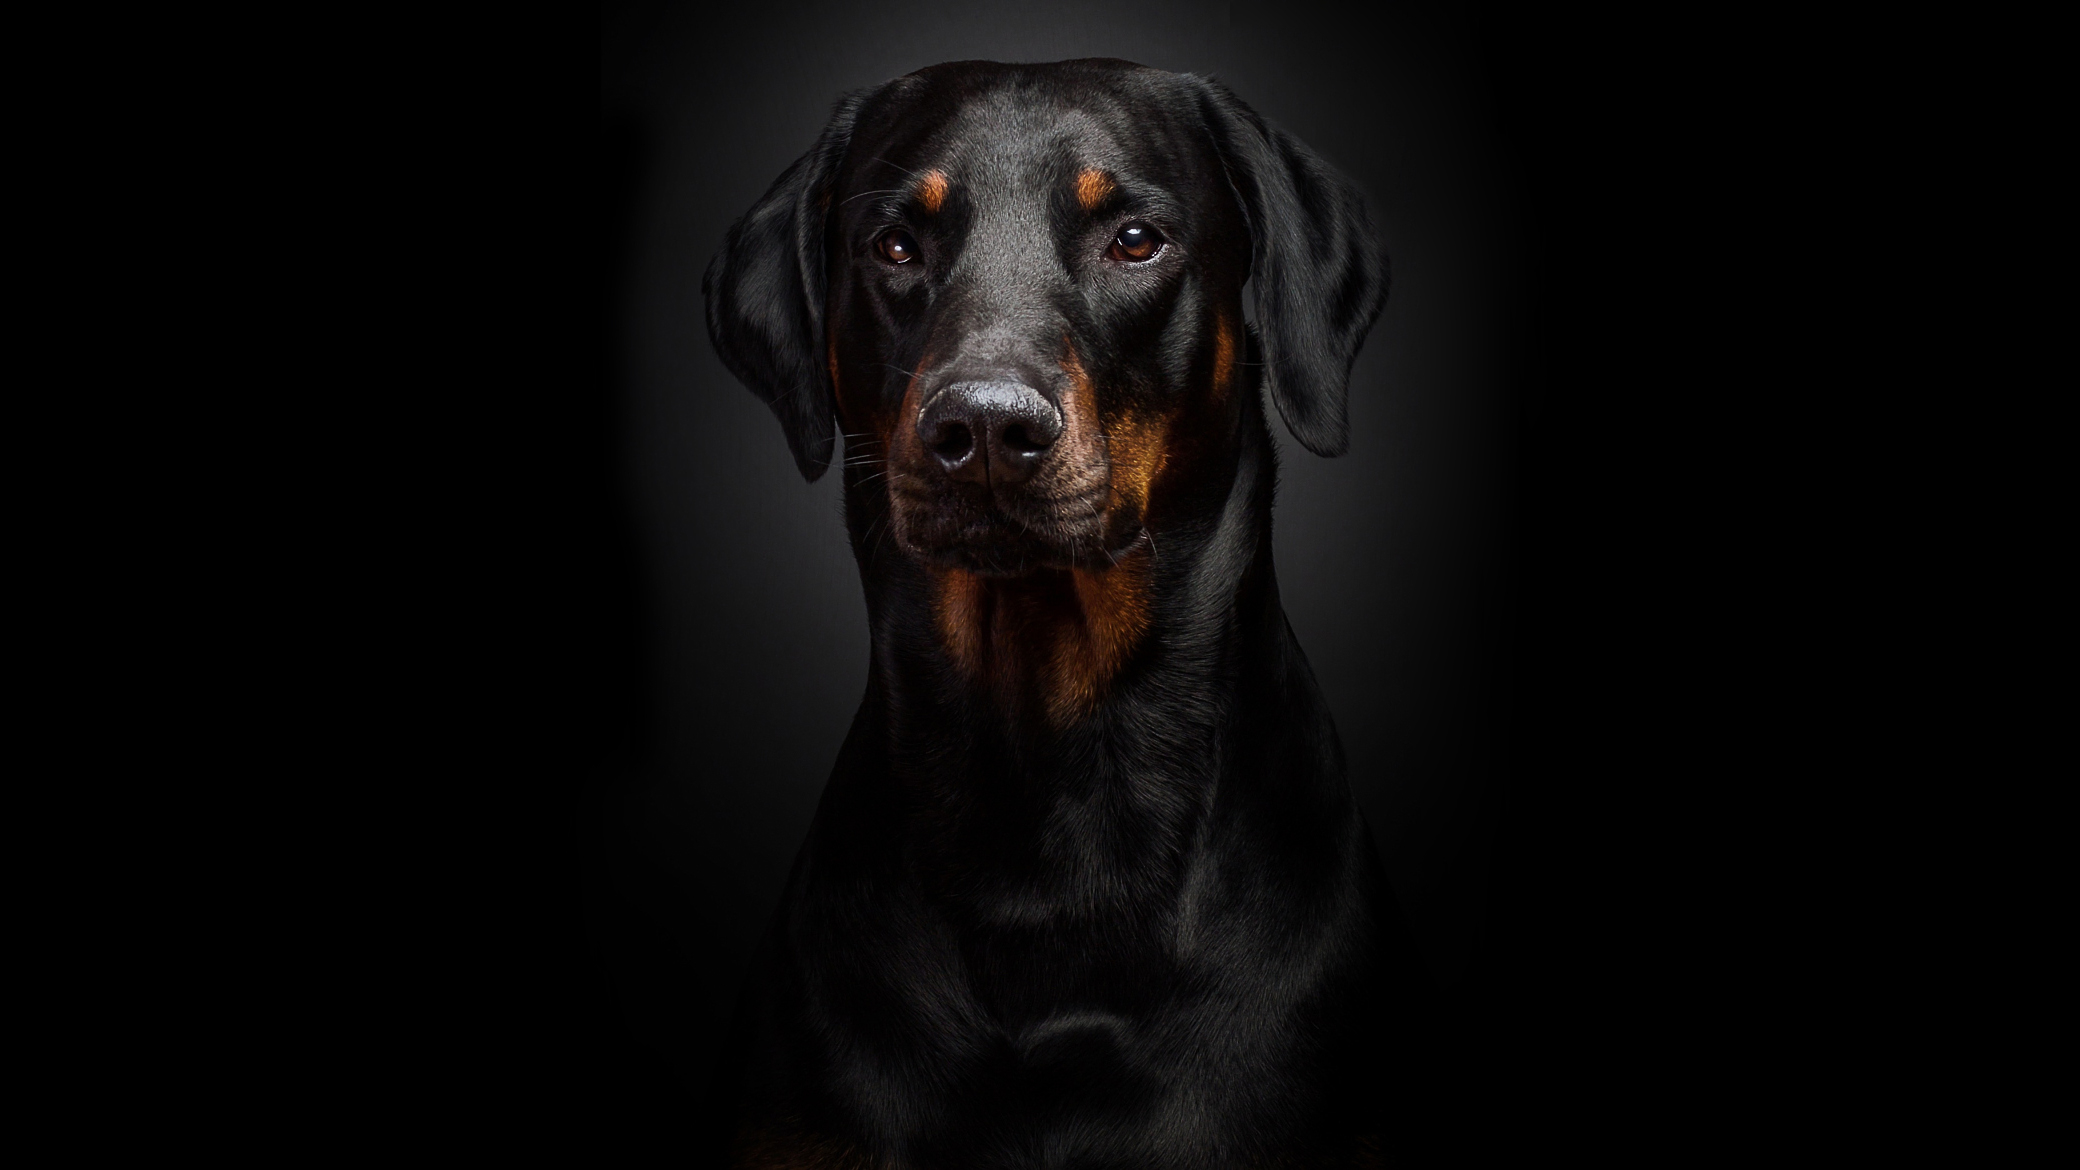 Rottweiler Full HD Wallpaper And Background Image